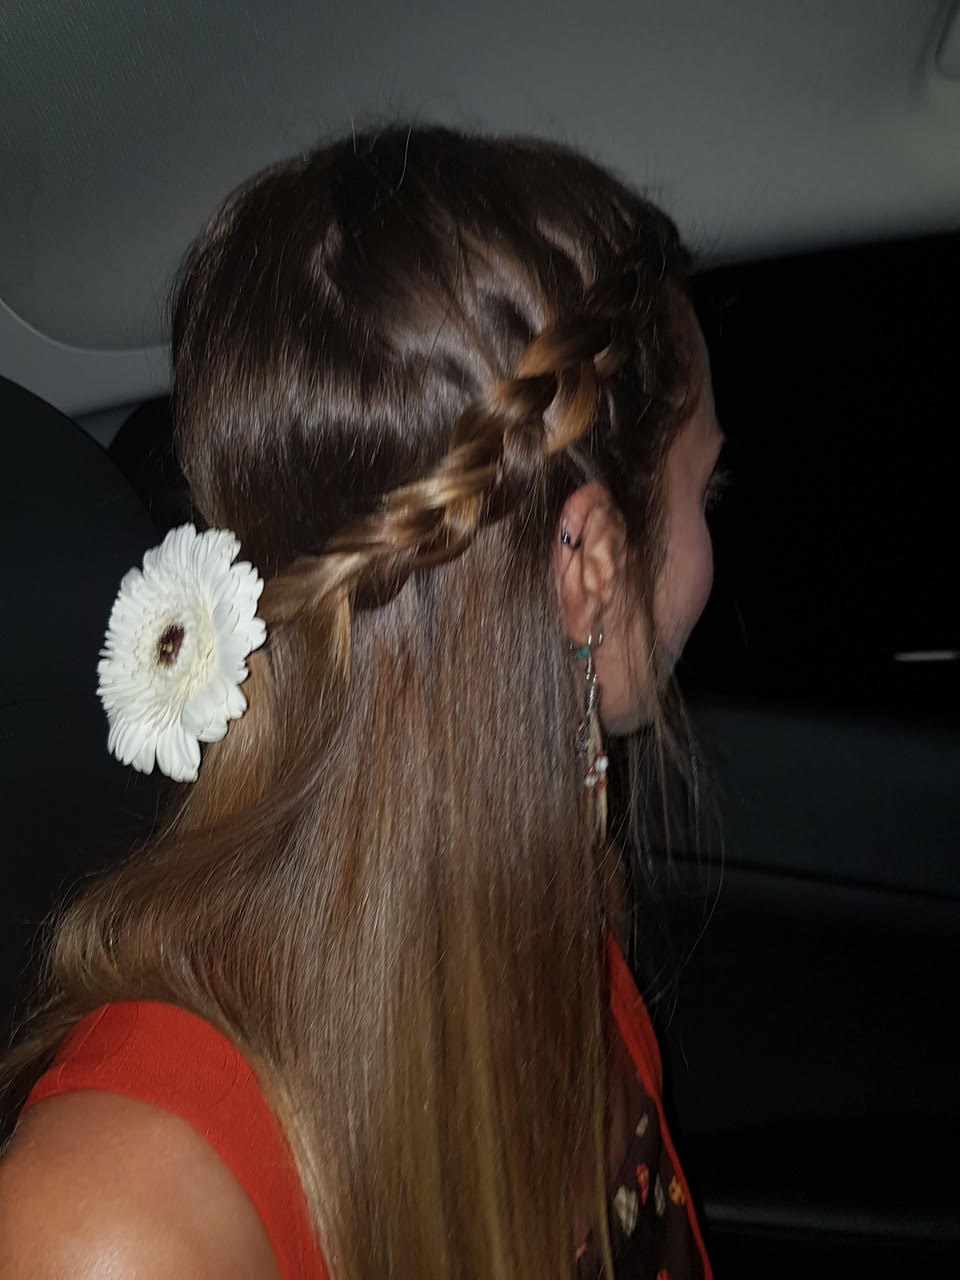 flower in her hair - photo #31